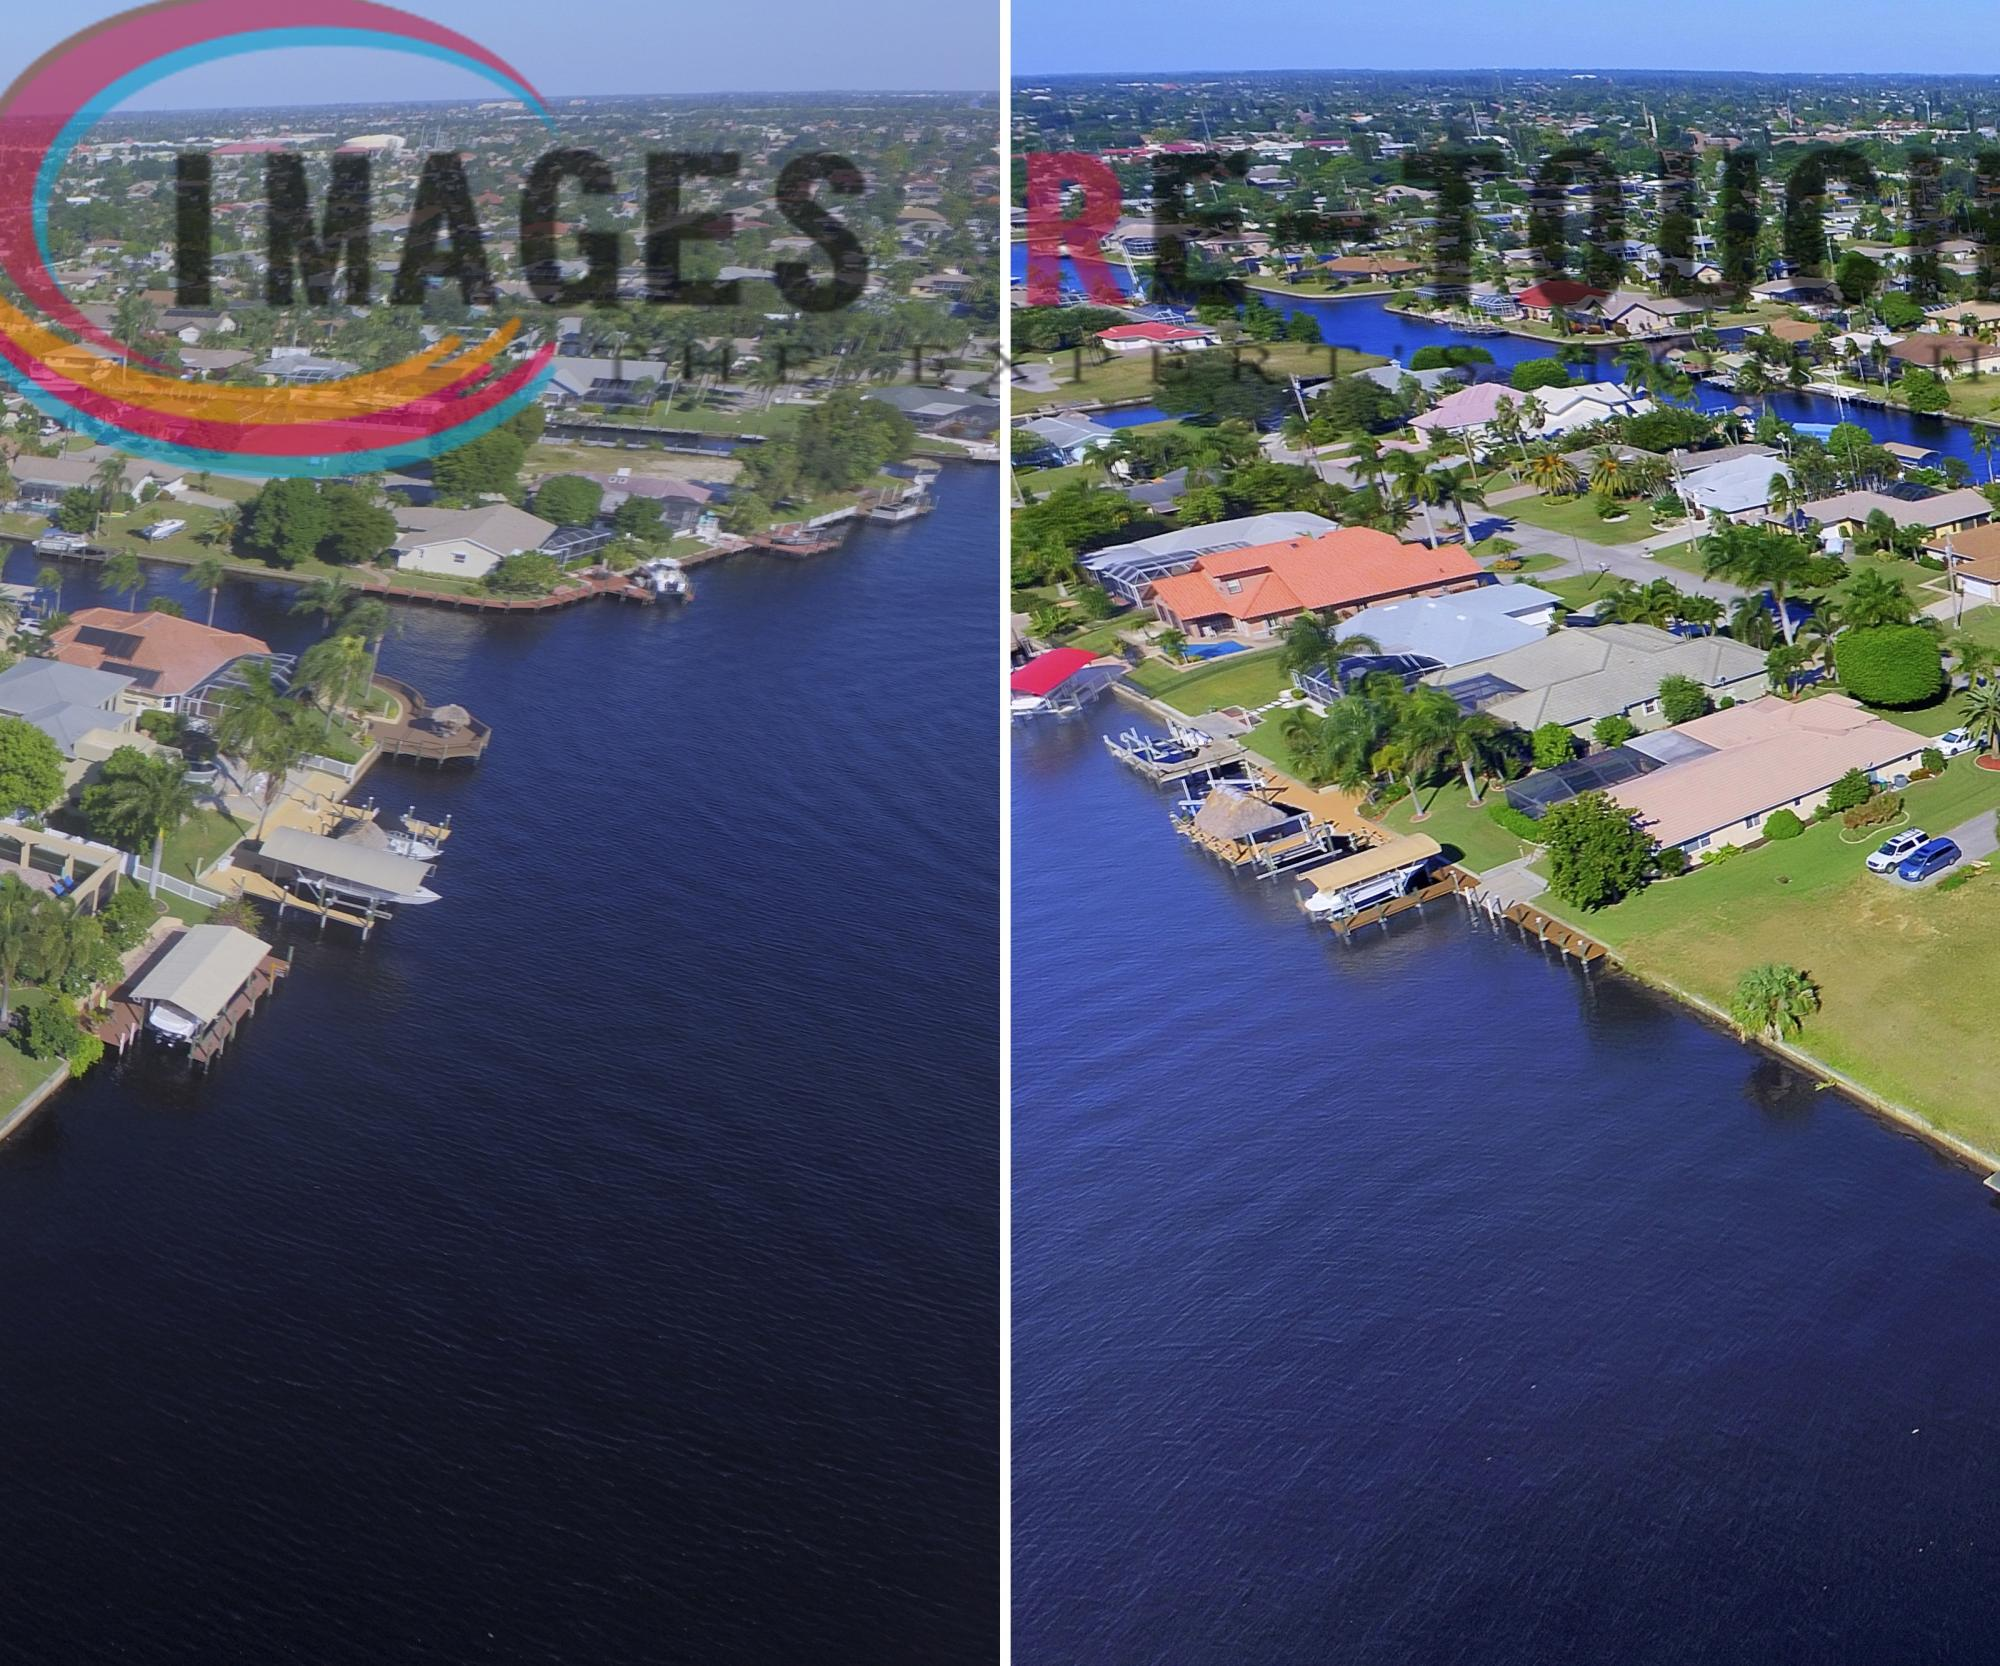 Drone Image Editing - Images Retouch